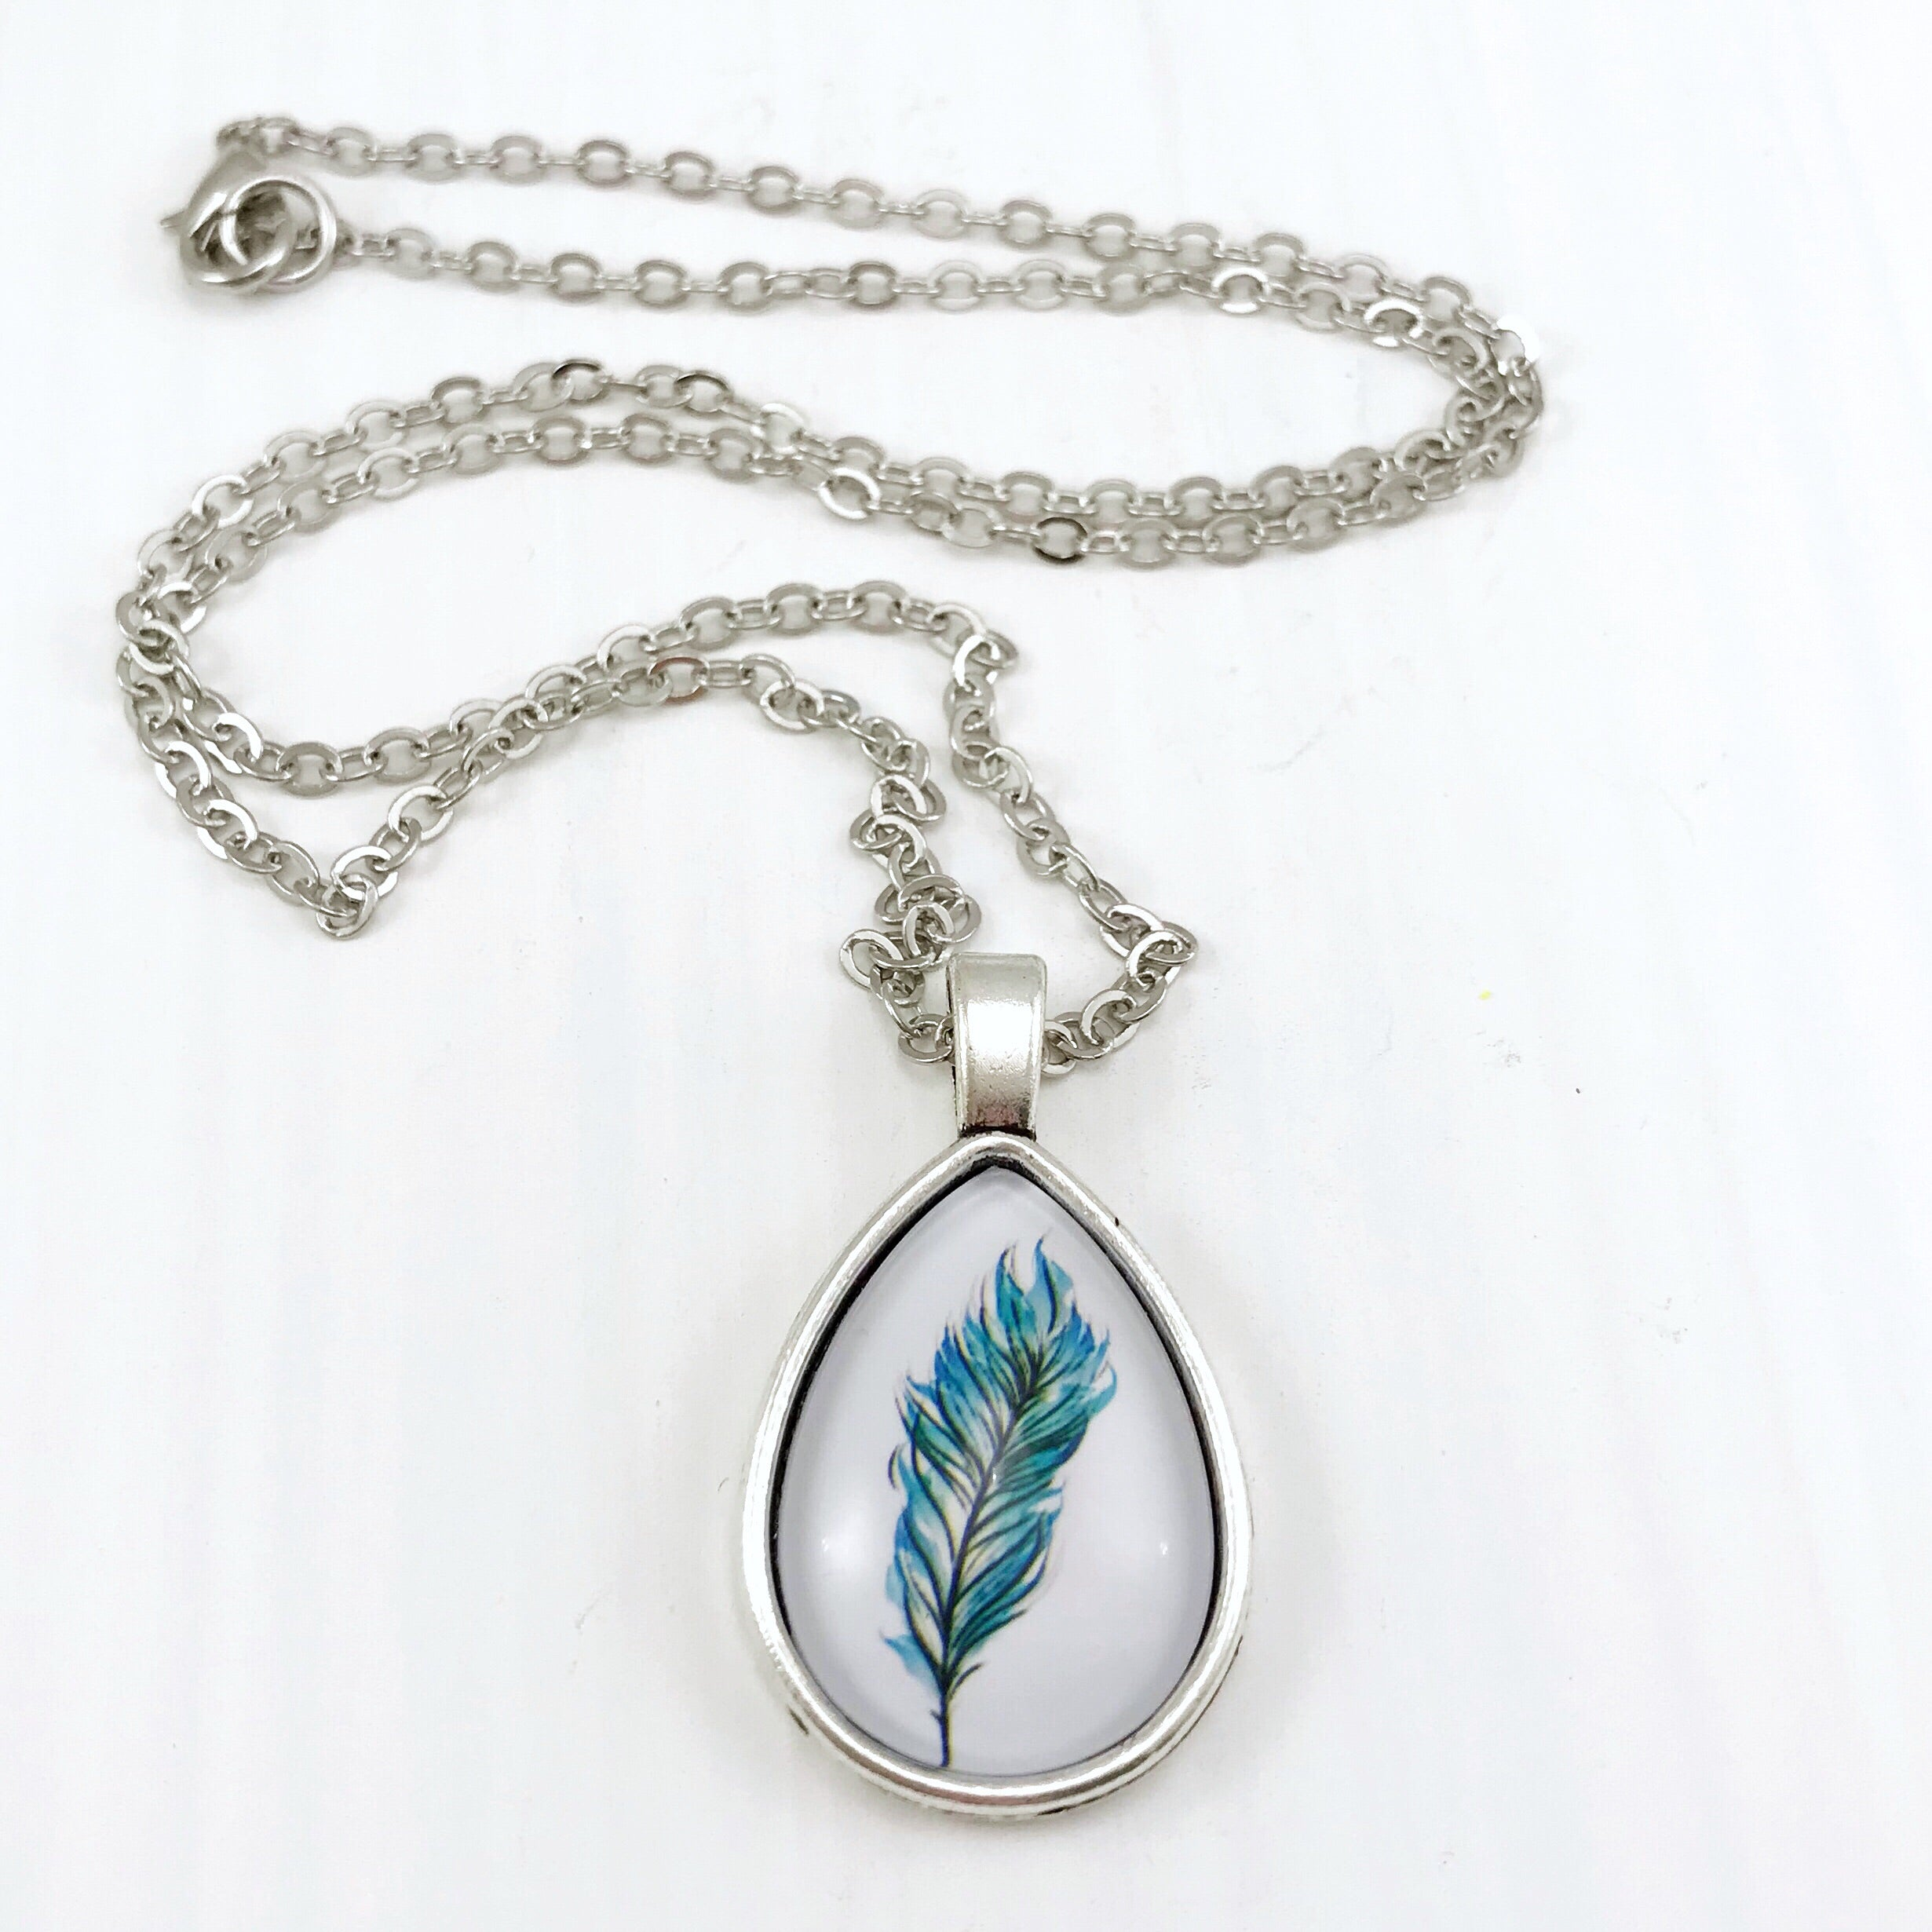 Blue Feather Teardrop Necklace - Antique Silver